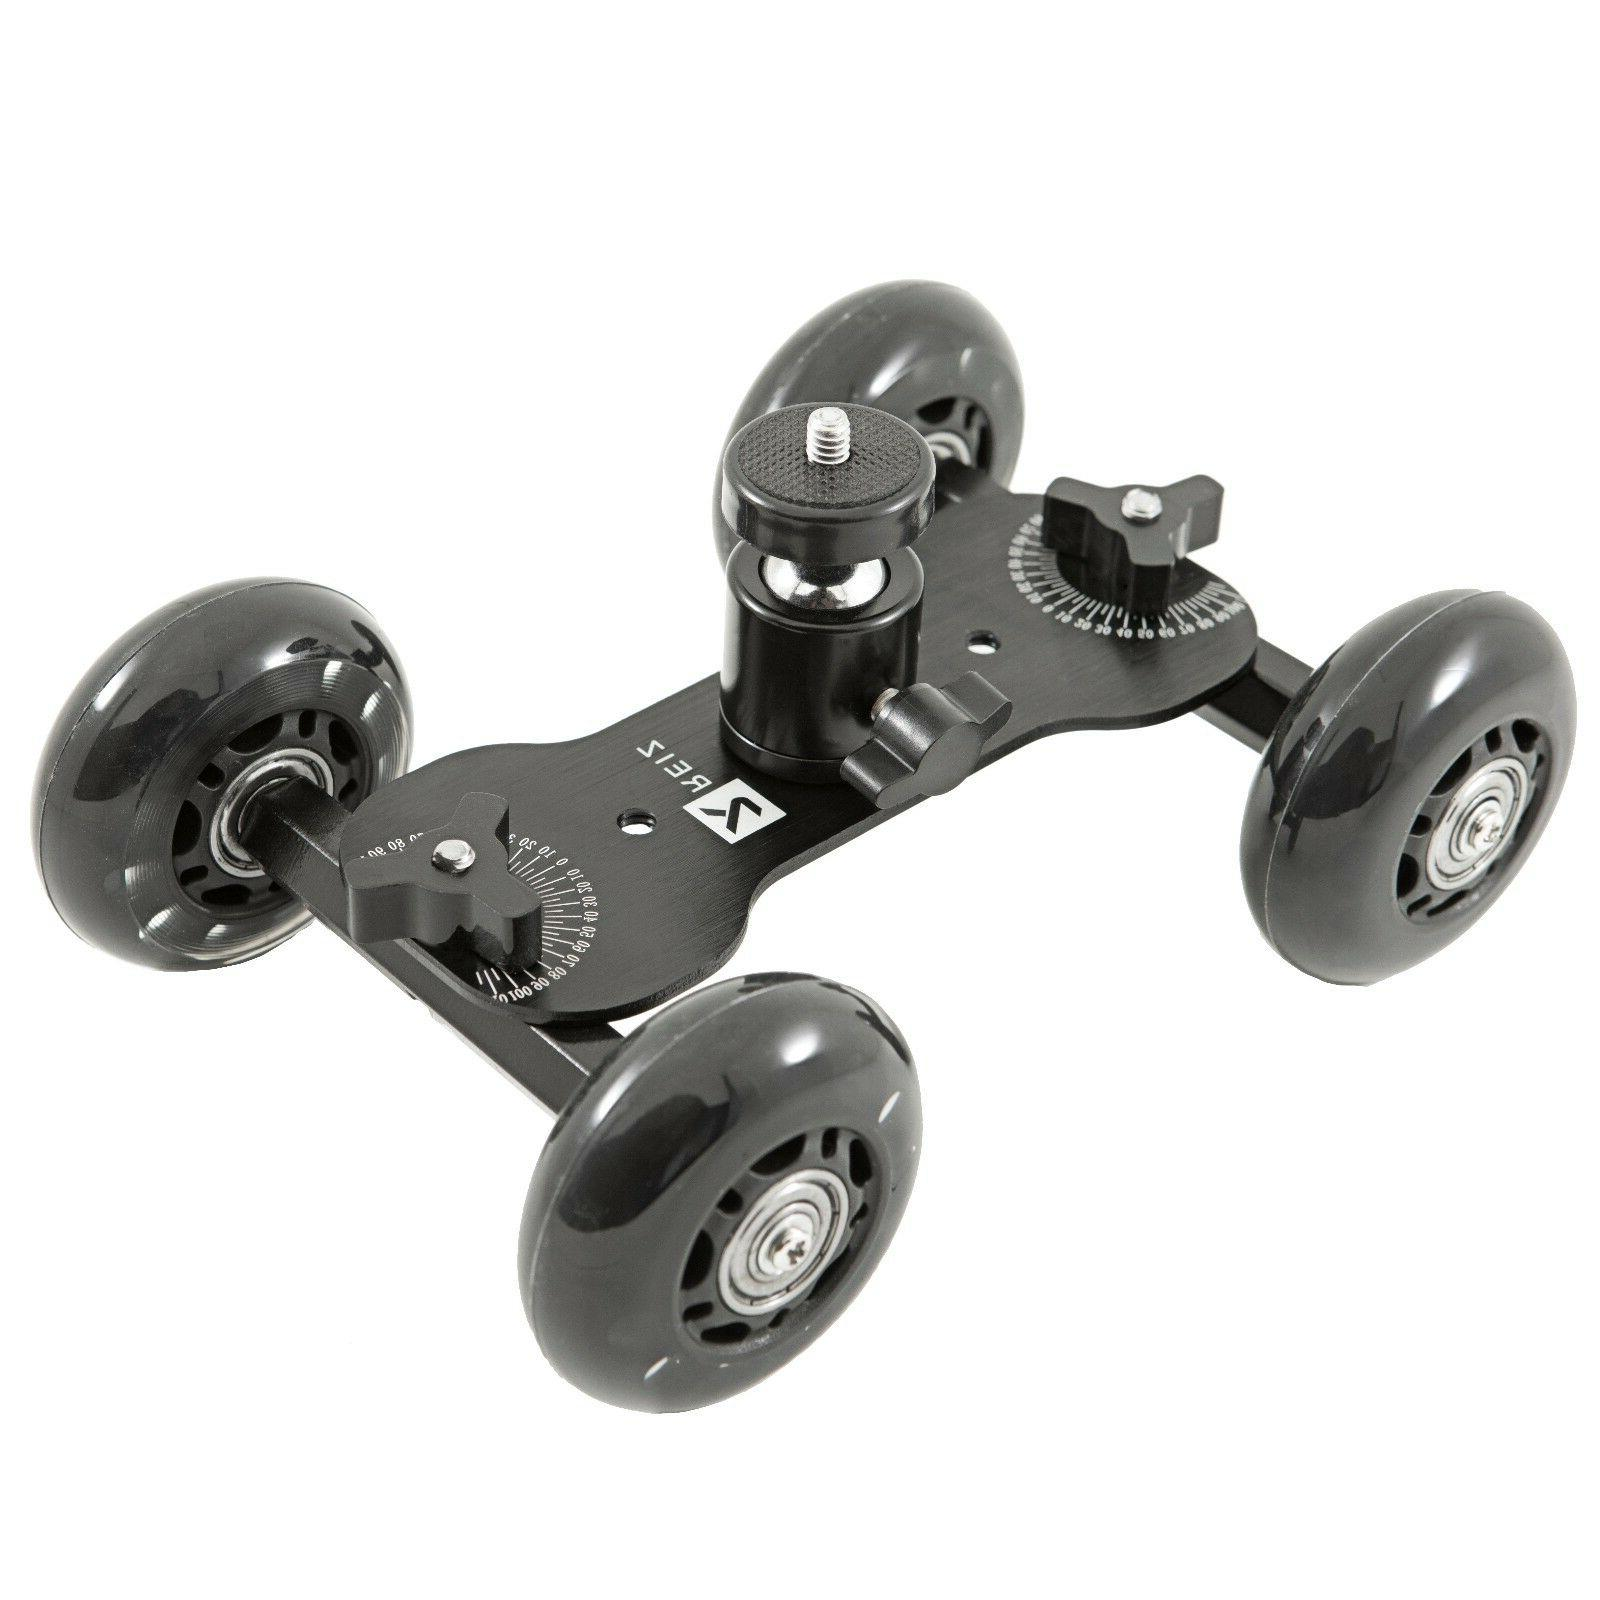 Desktop Wheels Slider Glide